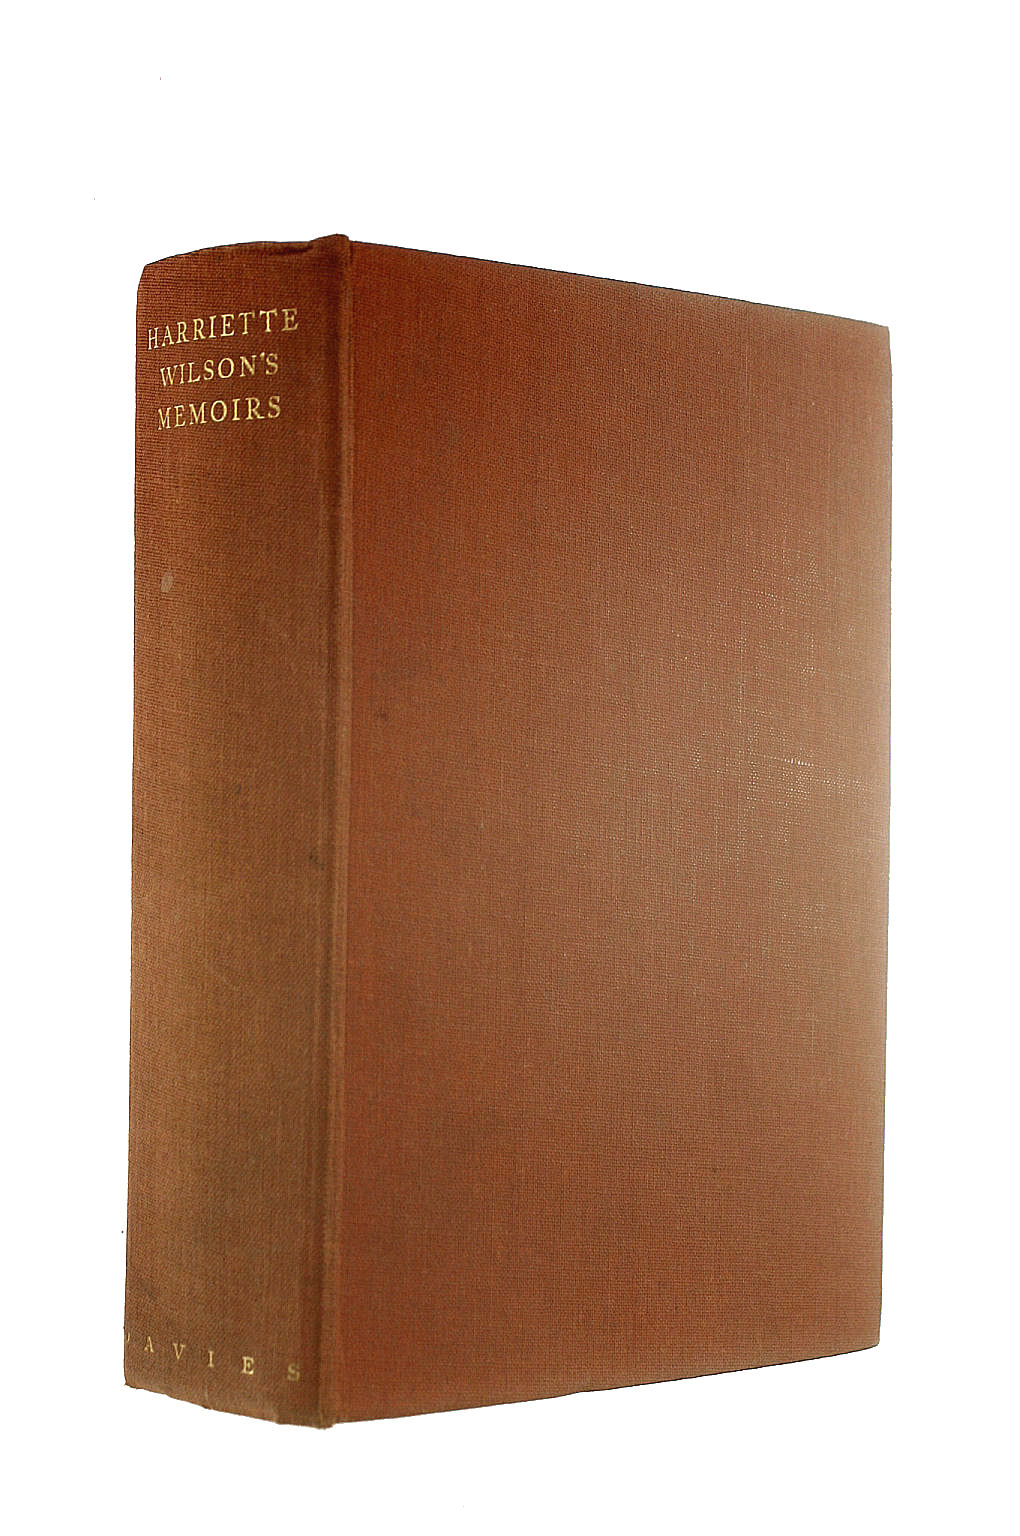 Image for Harriette Wilson's Memoirs of Herself and Others